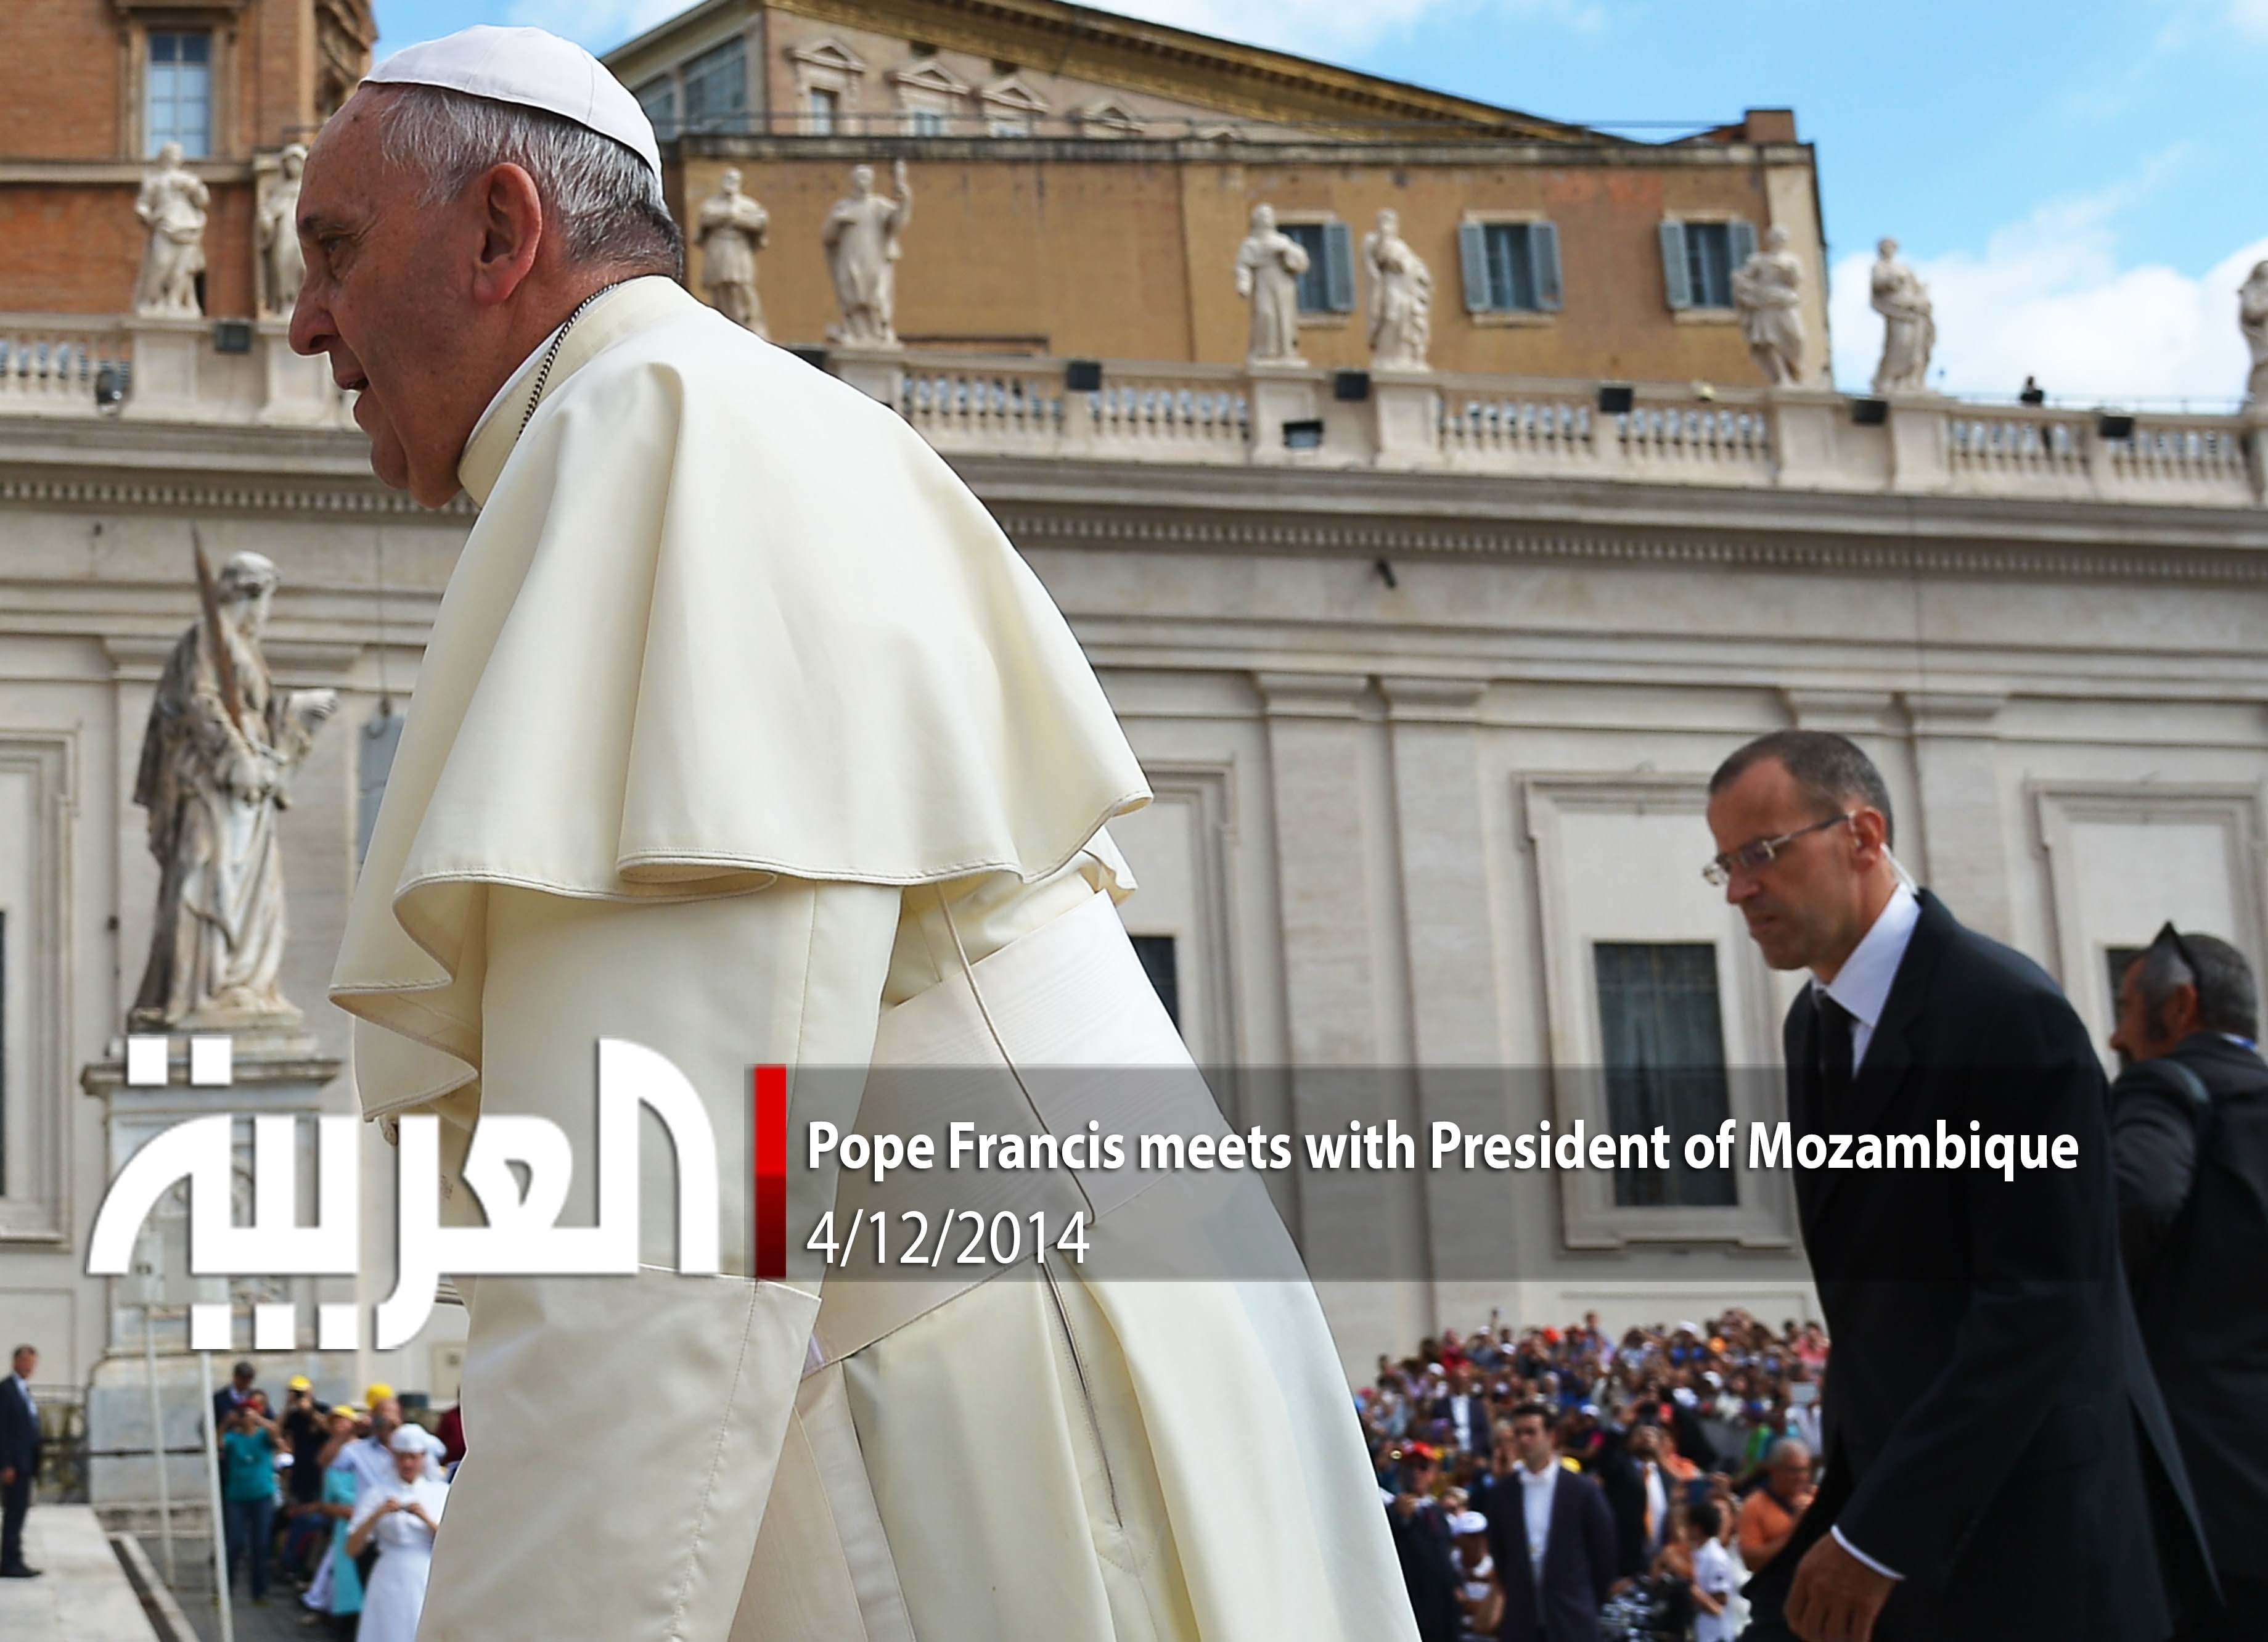 Pope Francis meets with President of Mozambique